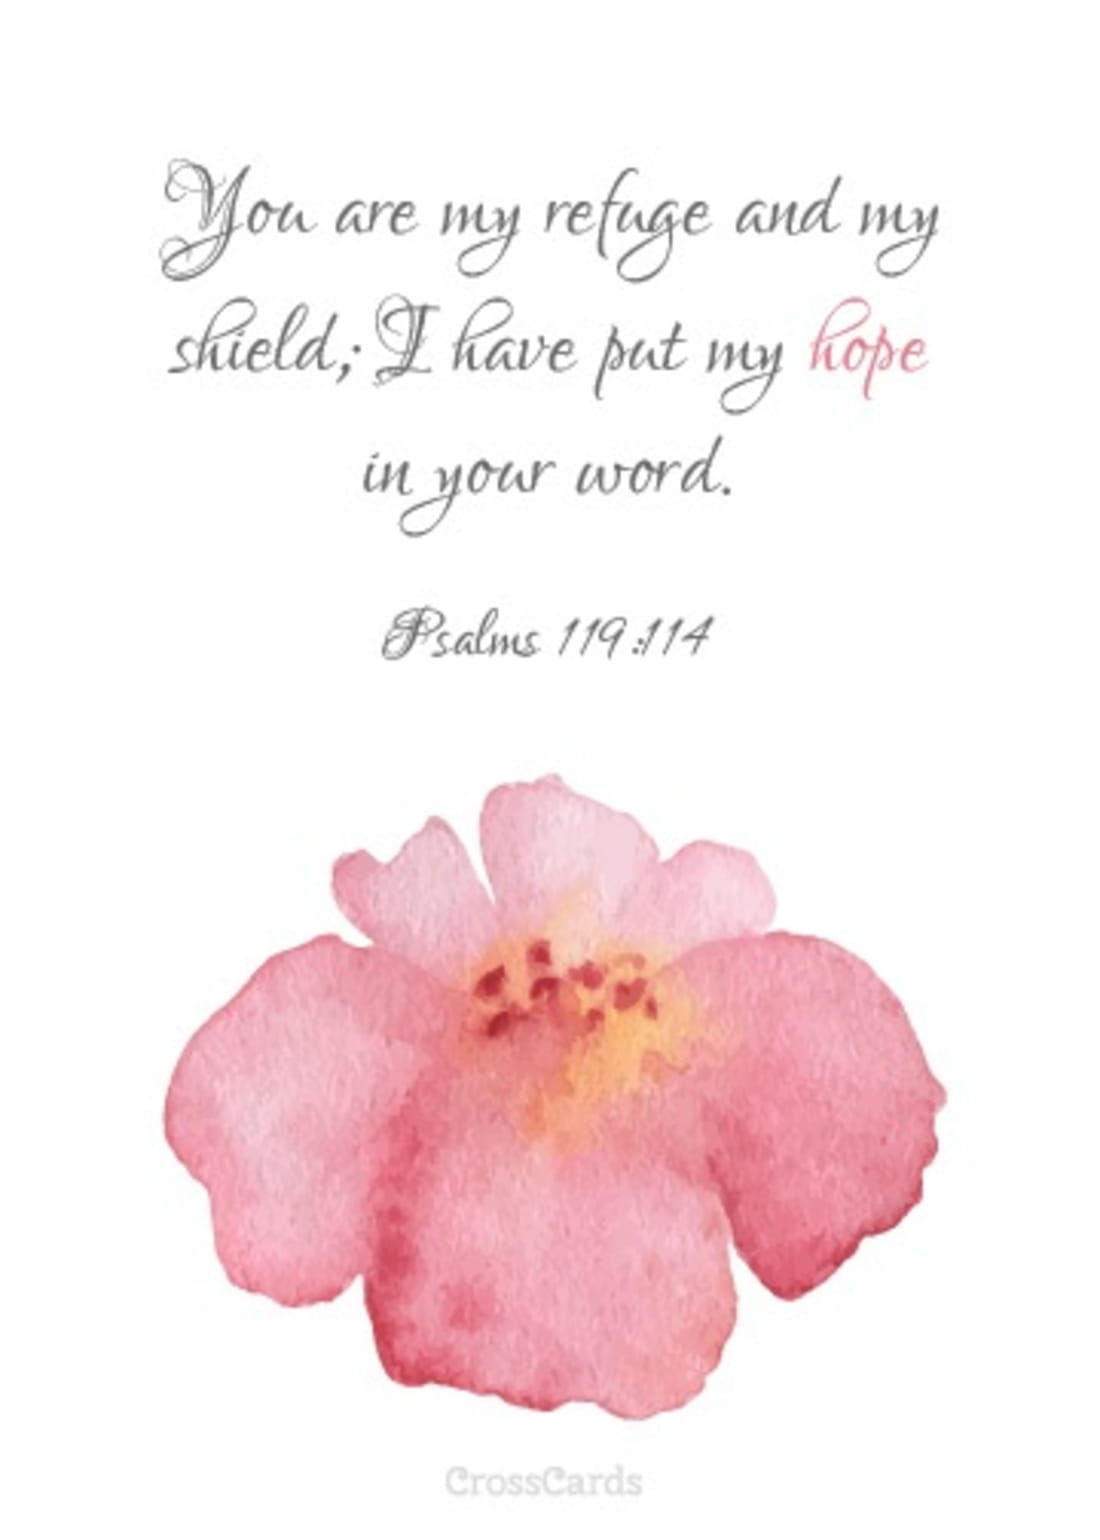 I Put My Hope in Your Word